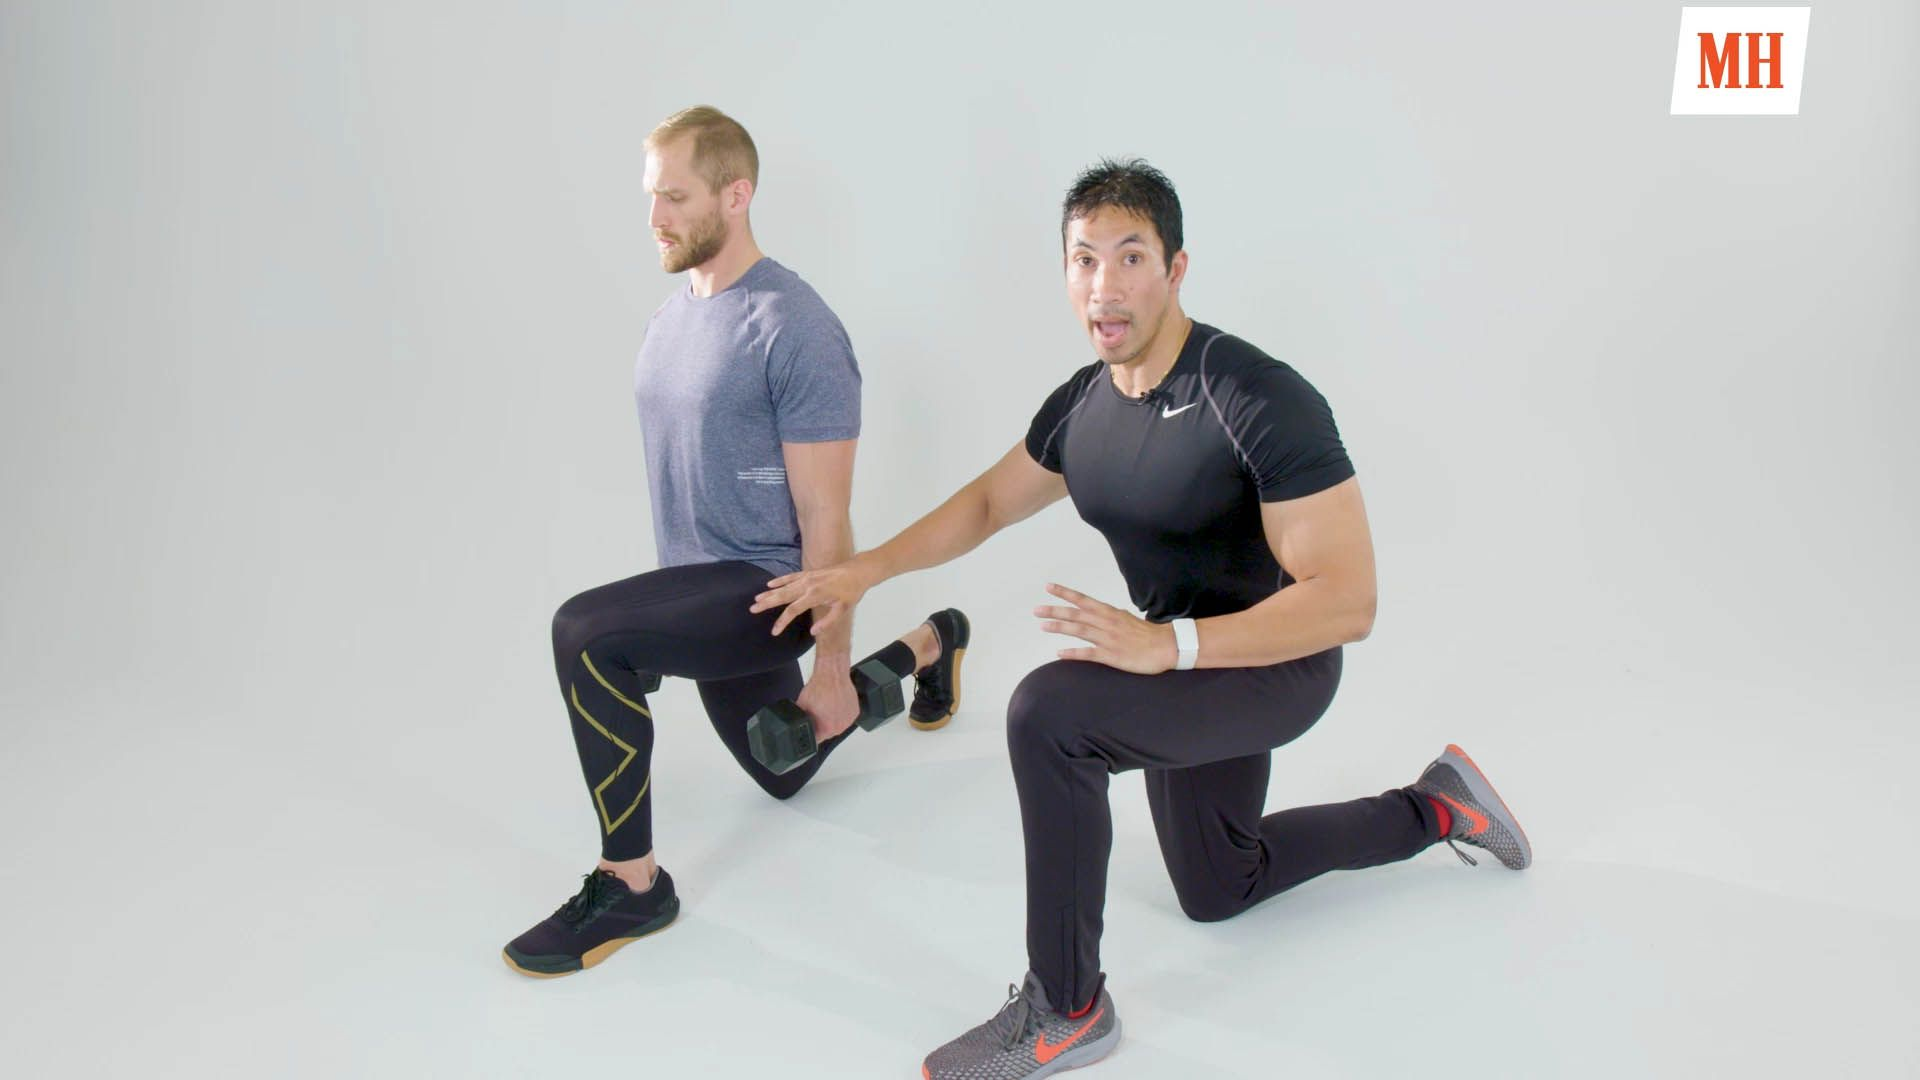 How to Do a Lunge the Right Way